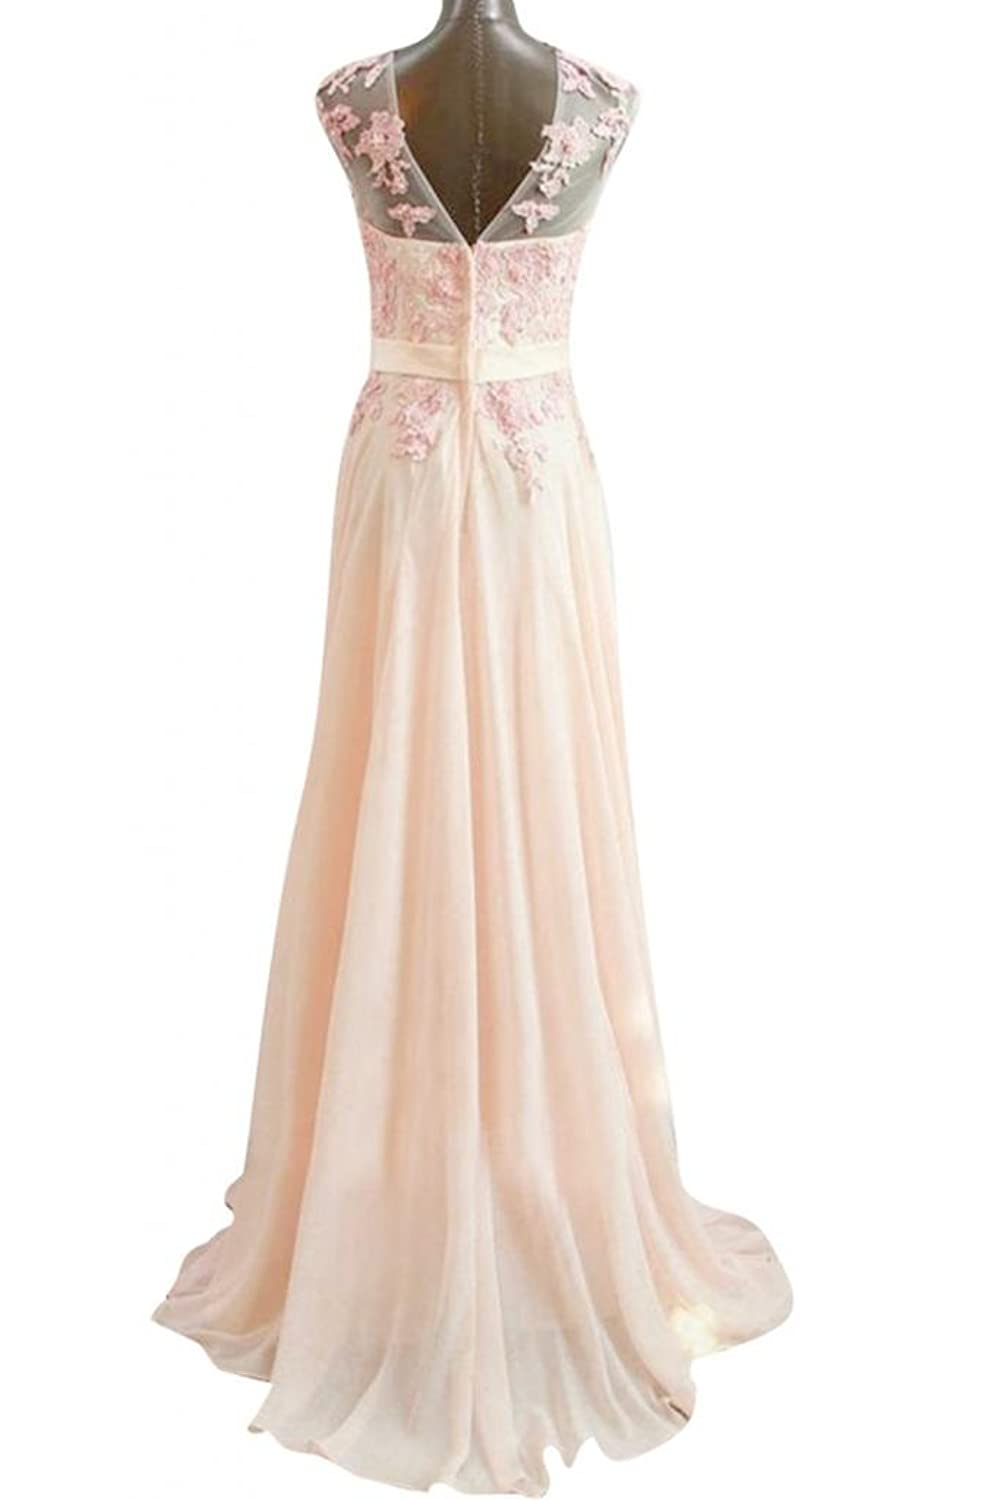 Amazon.com: Emma Y Romantic Chiffon Evening Gowns Appliques Long Prom Dress: Clothing